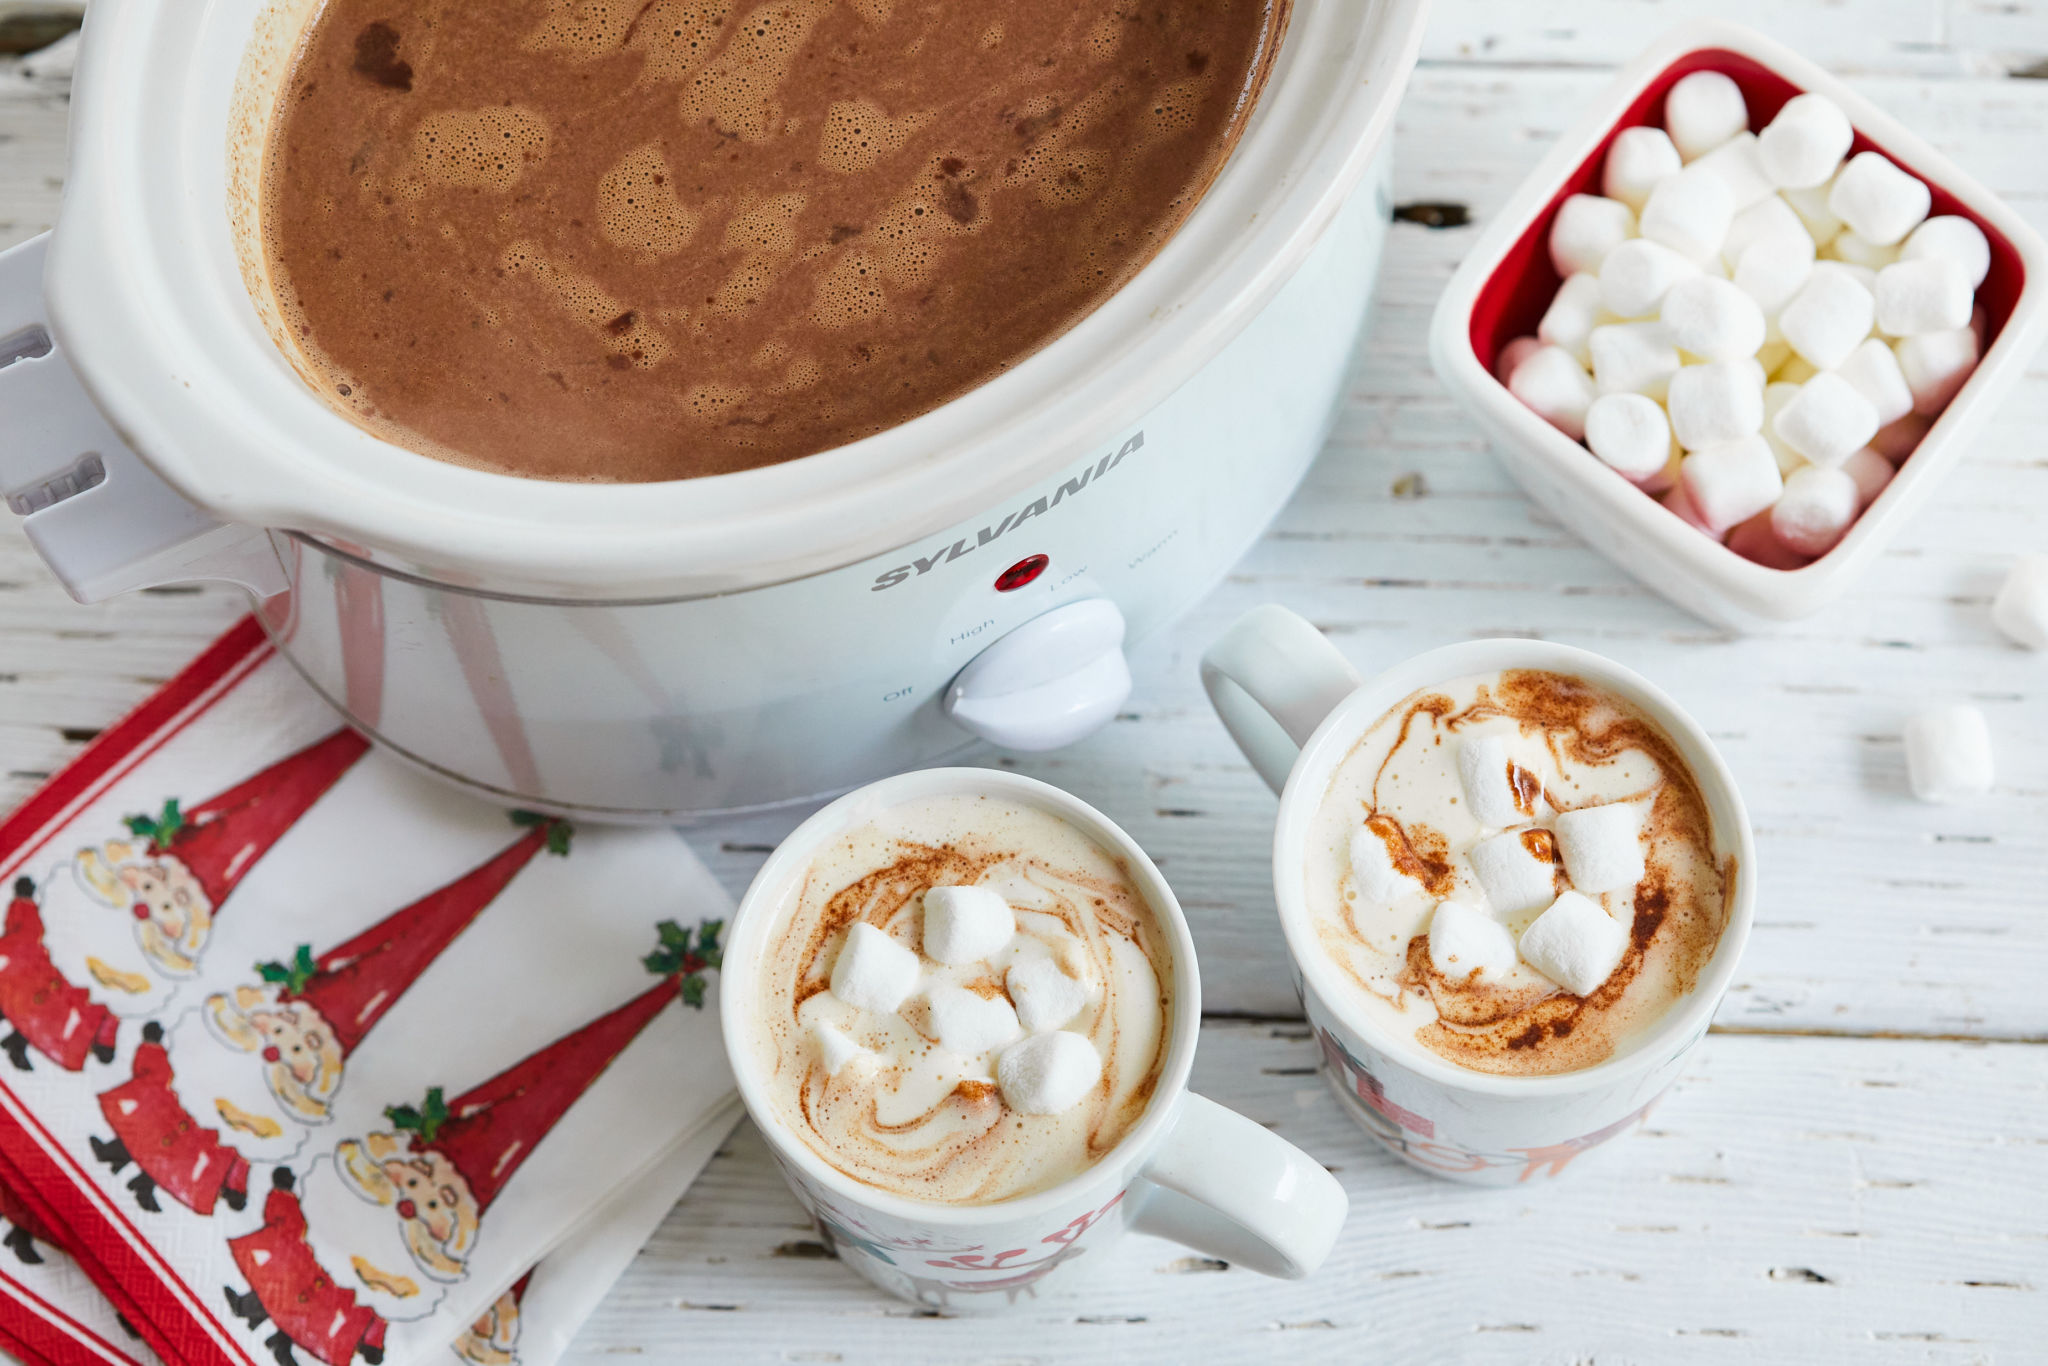 A slow cooker full of hot chocolate next to two mugs and a bowl of marshmallows.